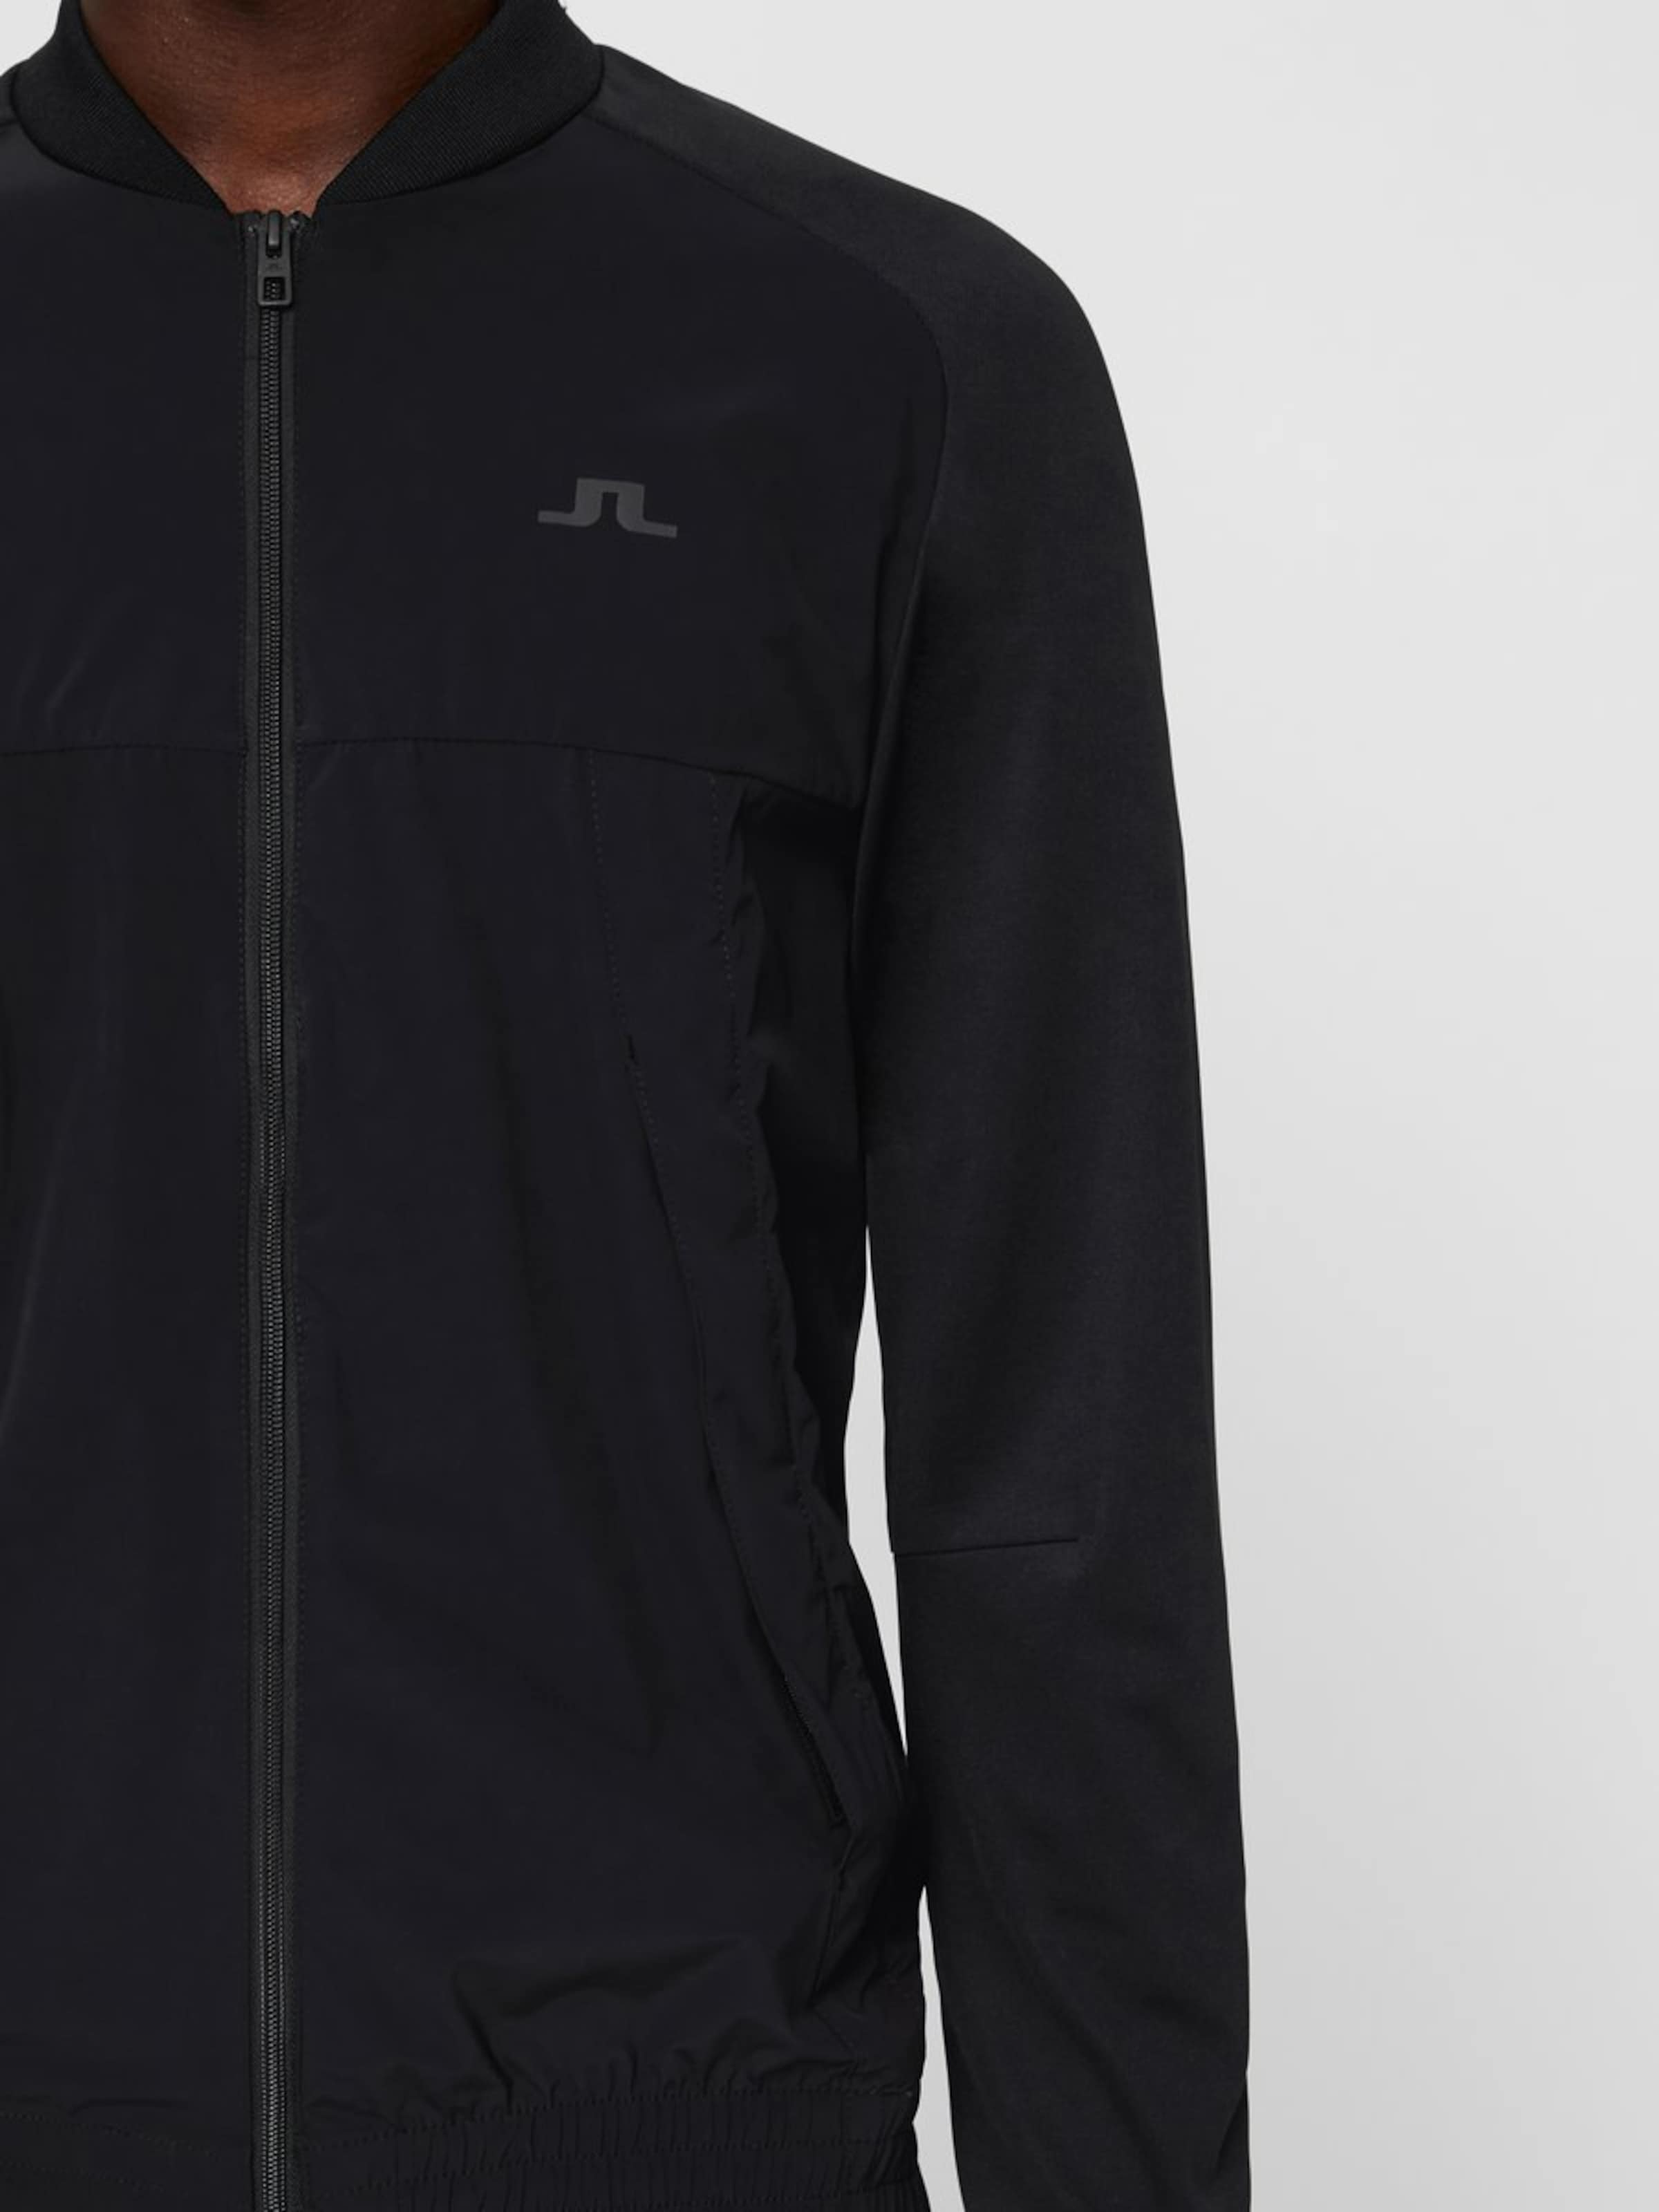 Jacke lindeberg In Luxe' J Schwarz 'm A35L4Rqj